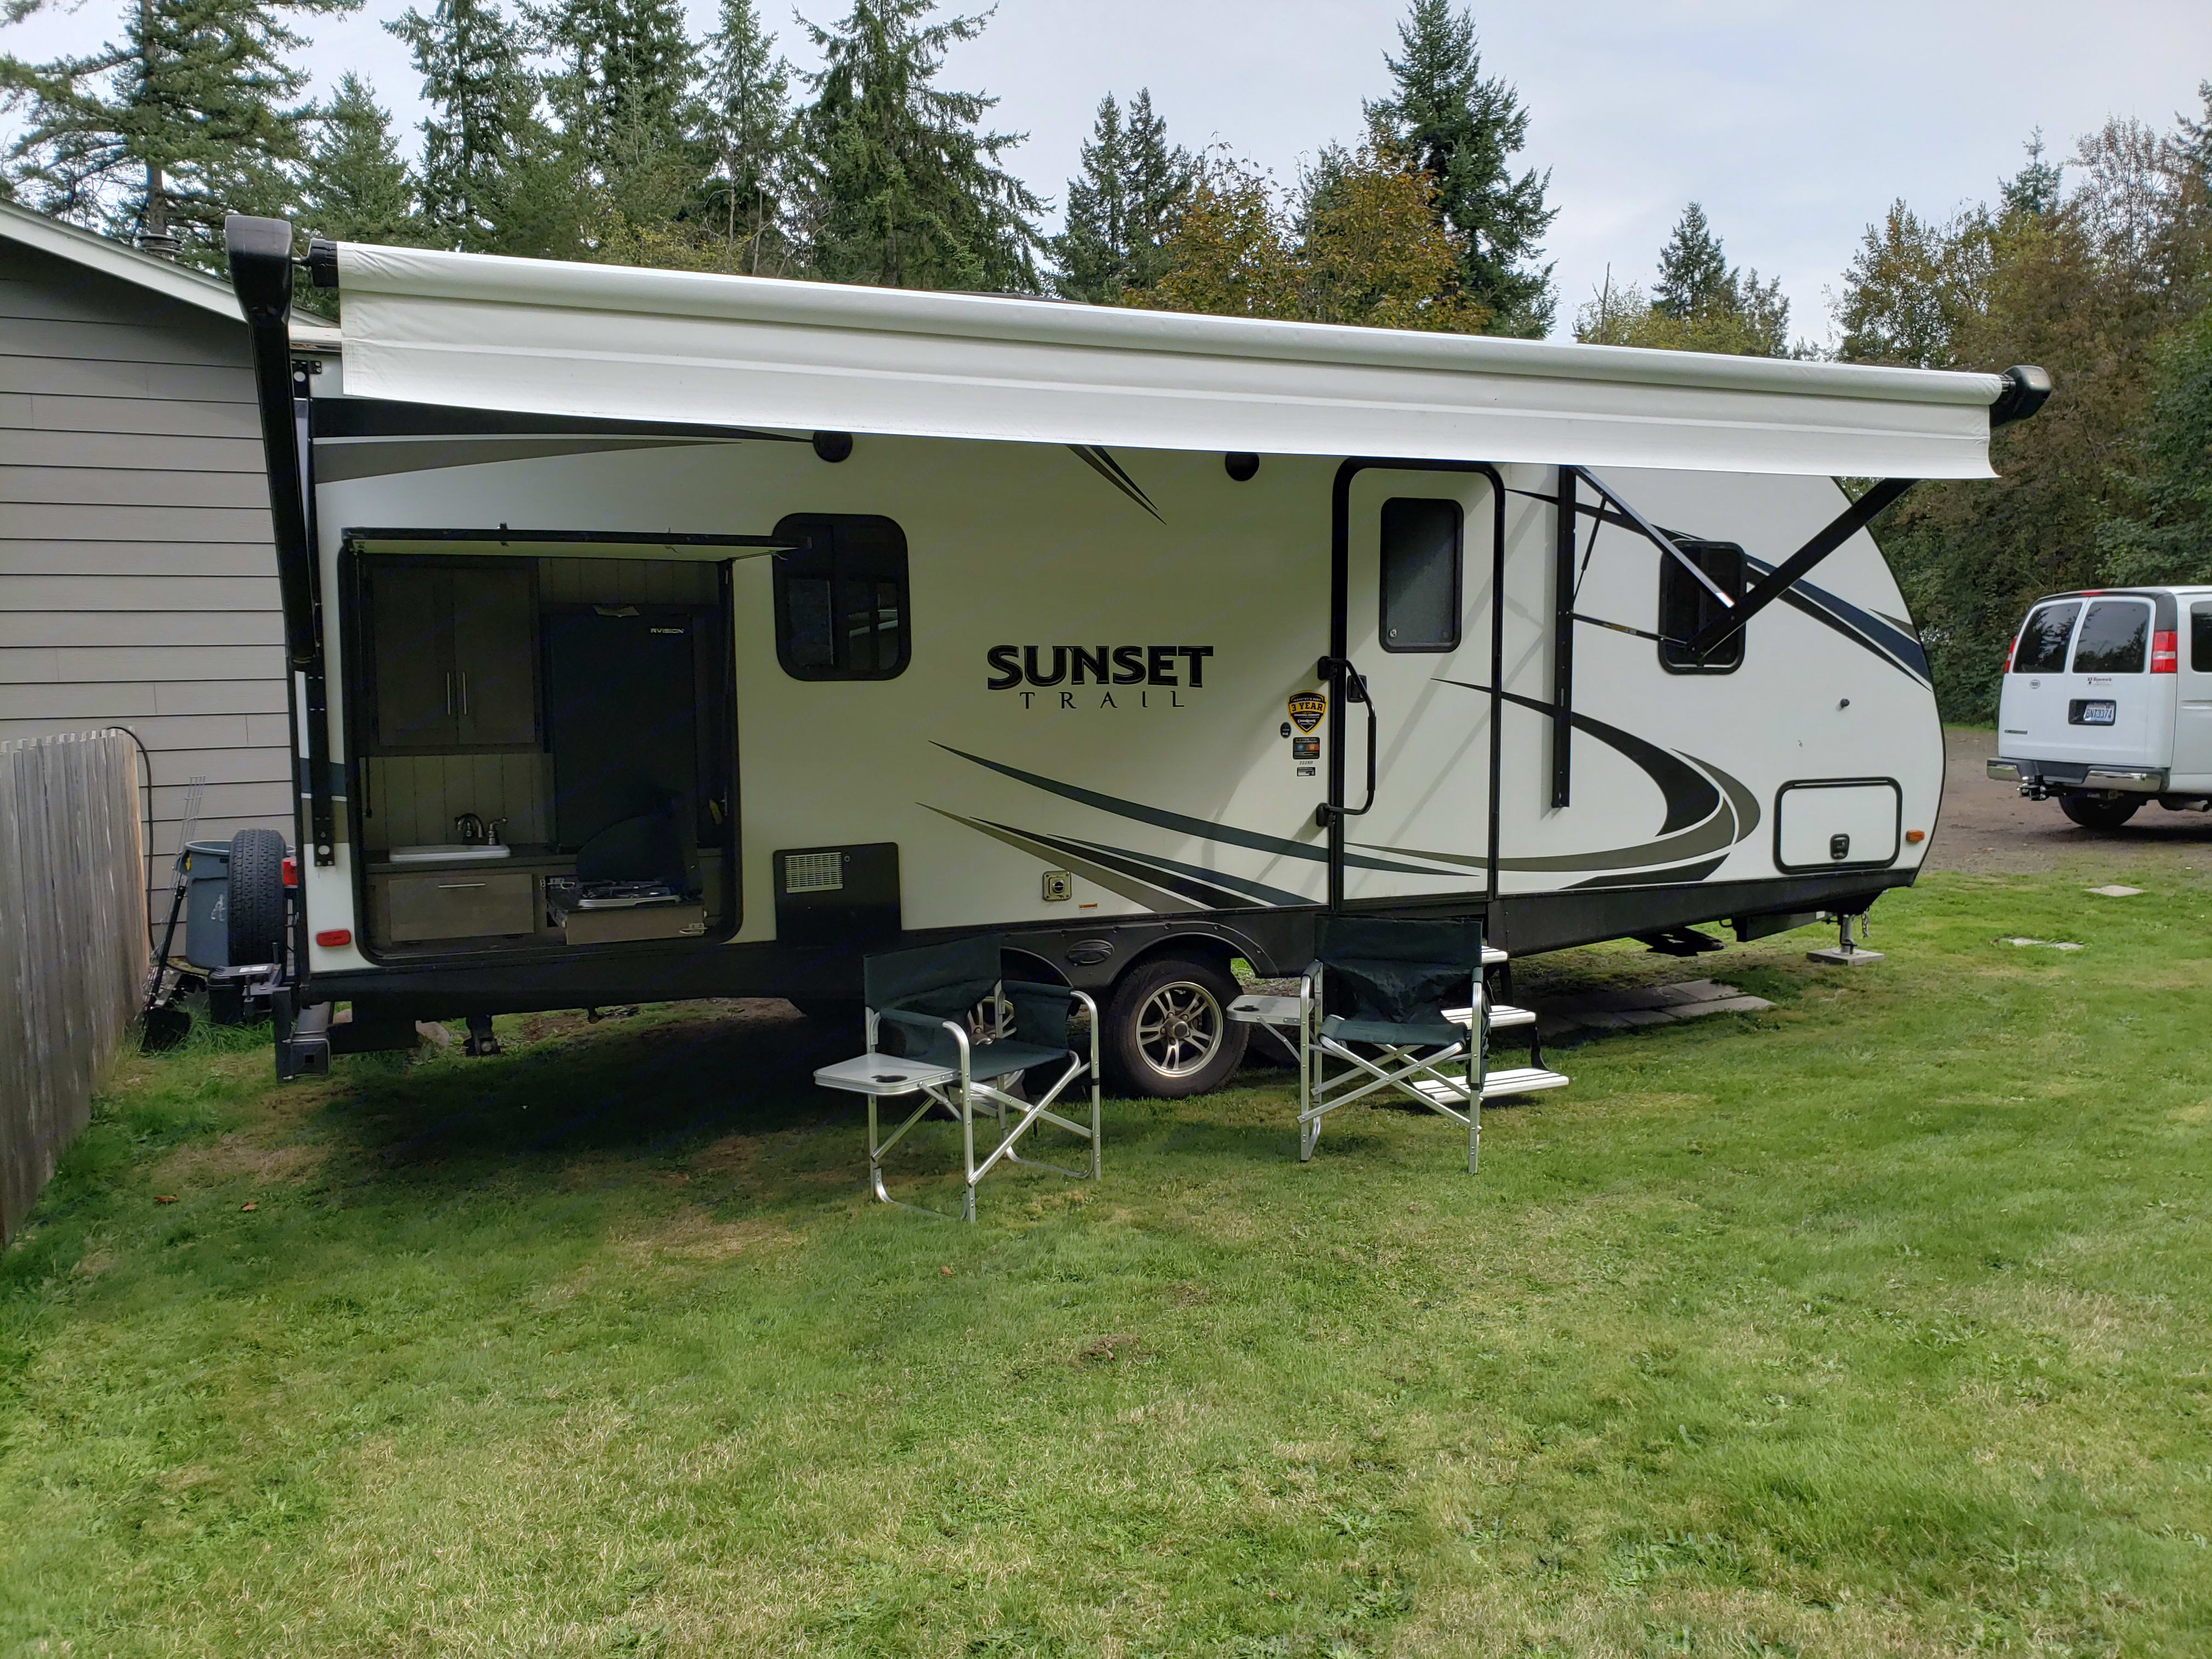 Awning extended with out door stove and refridgerator. Forest River Sunset Trail 2018